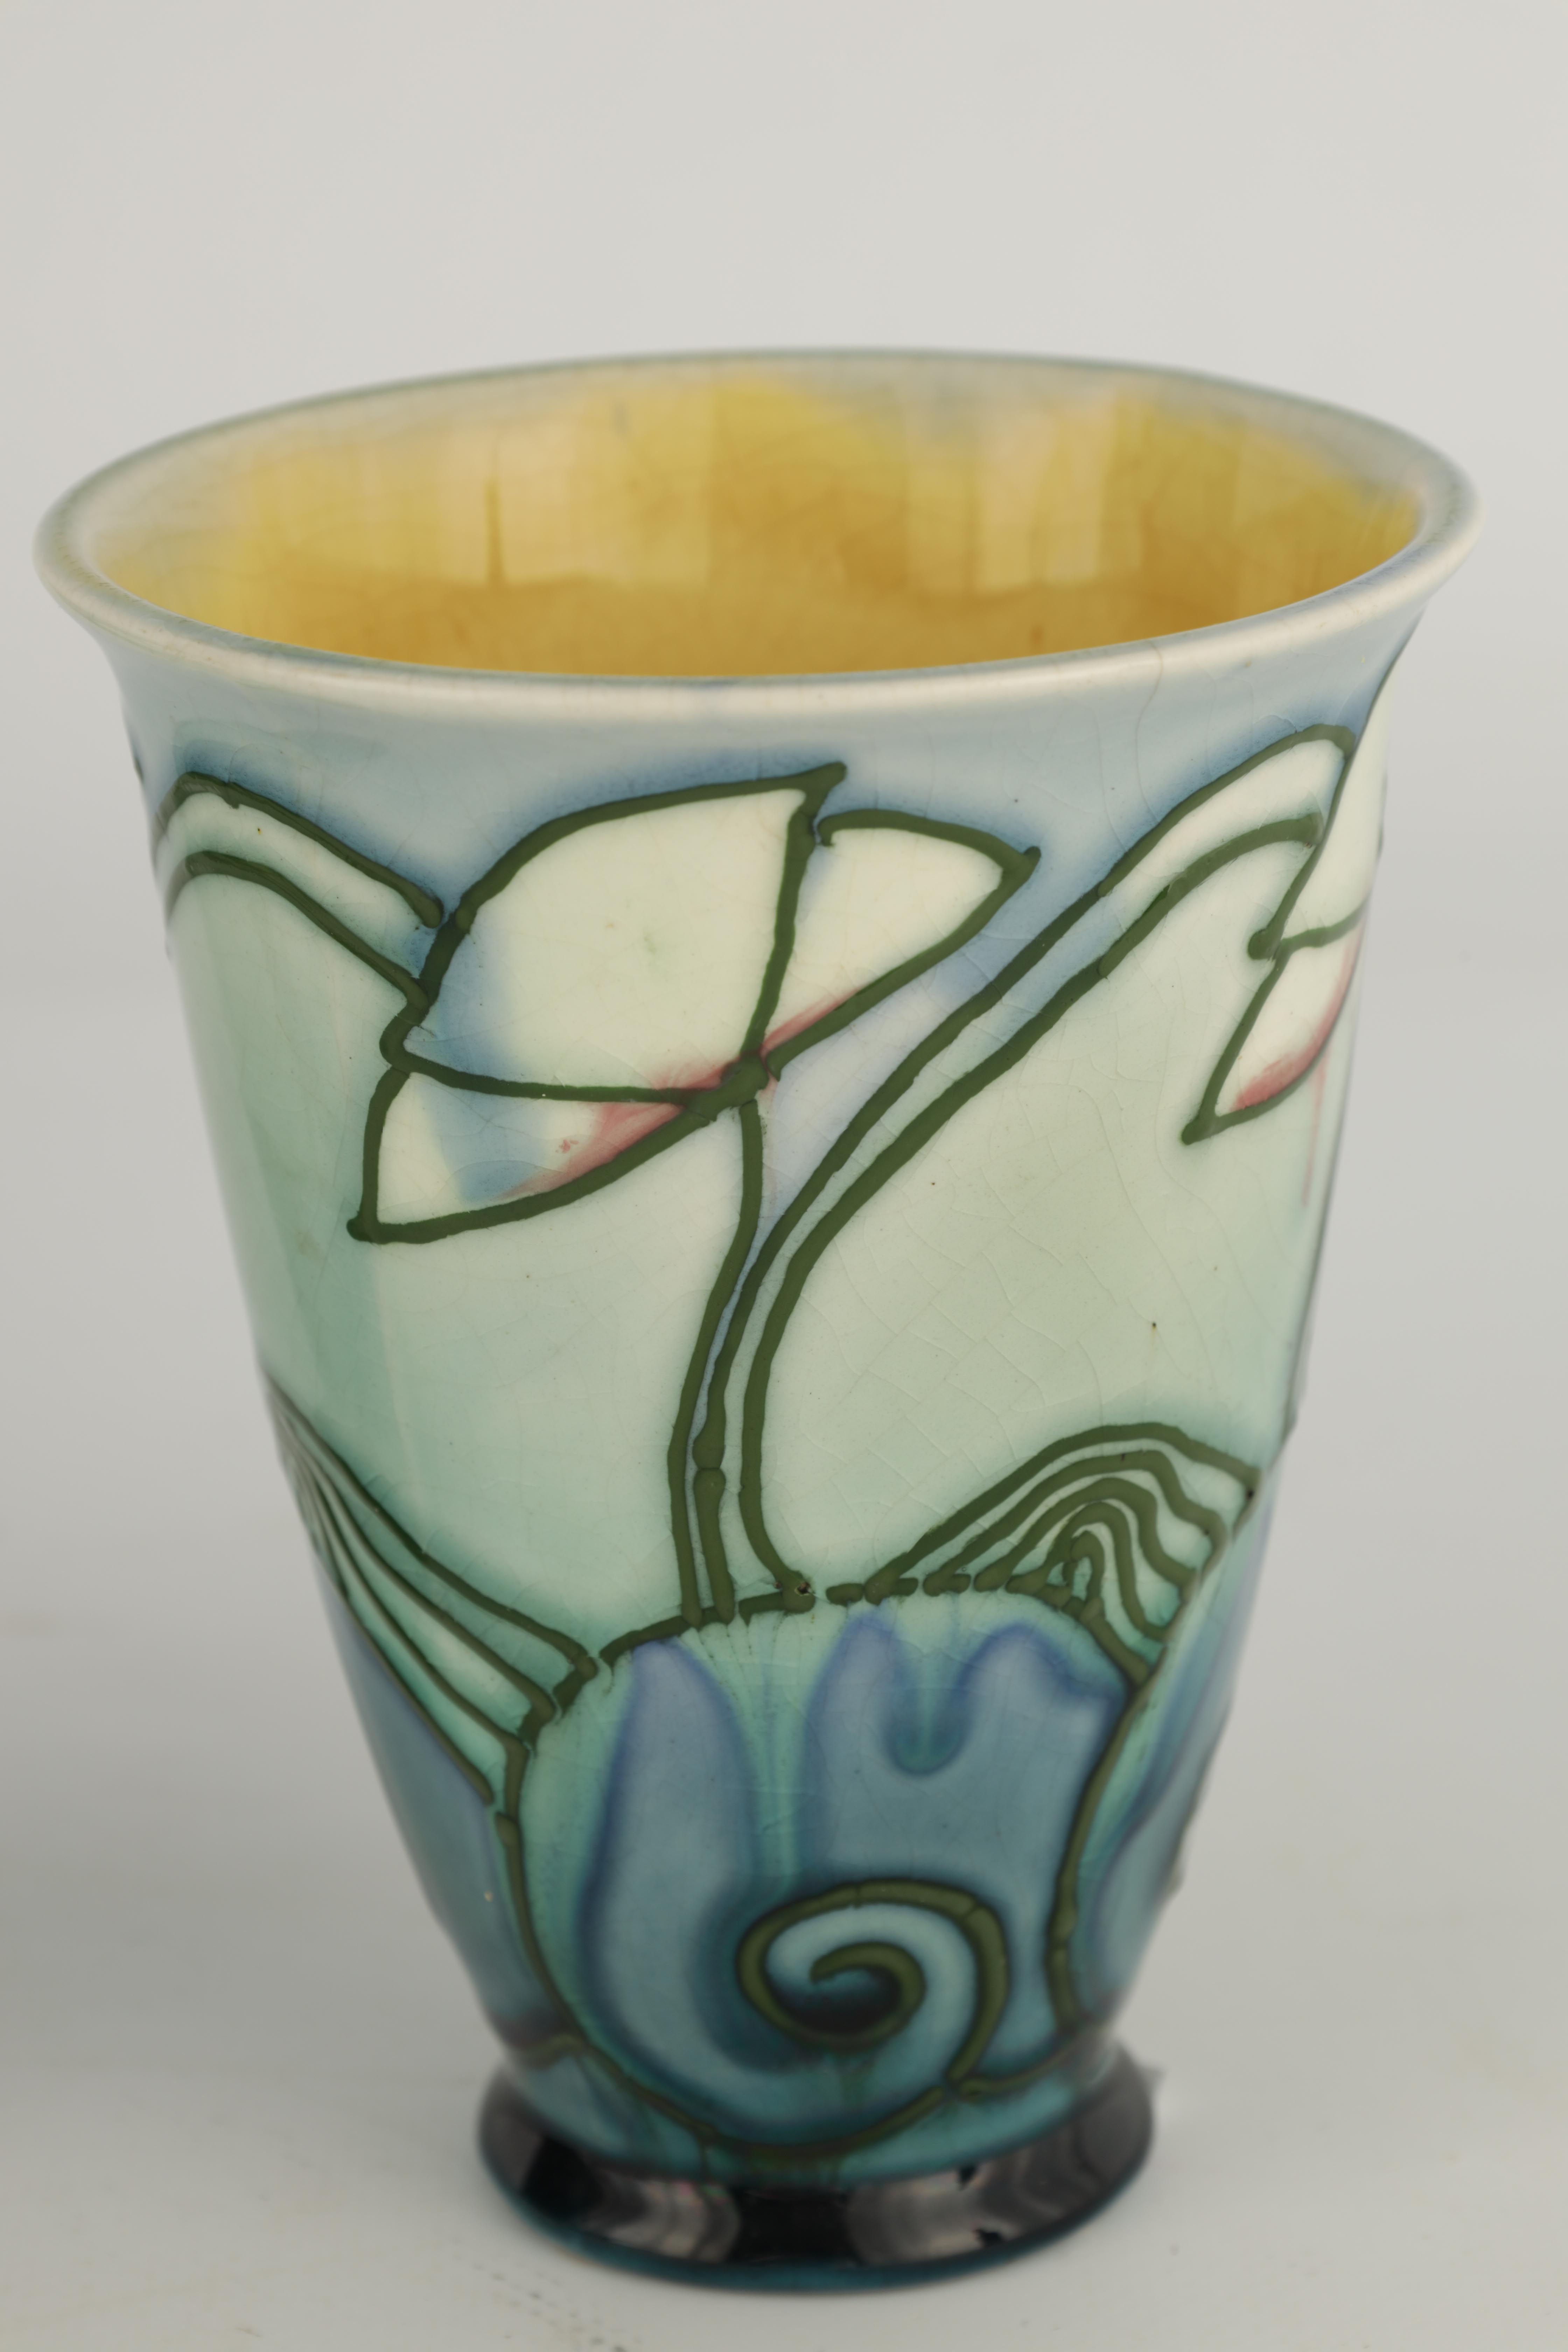 A PAIR OF MINTON LTD SECESSIONIST WARE TAPERING BEAKER VASES tube lined and decorated with - Image 4 of 6